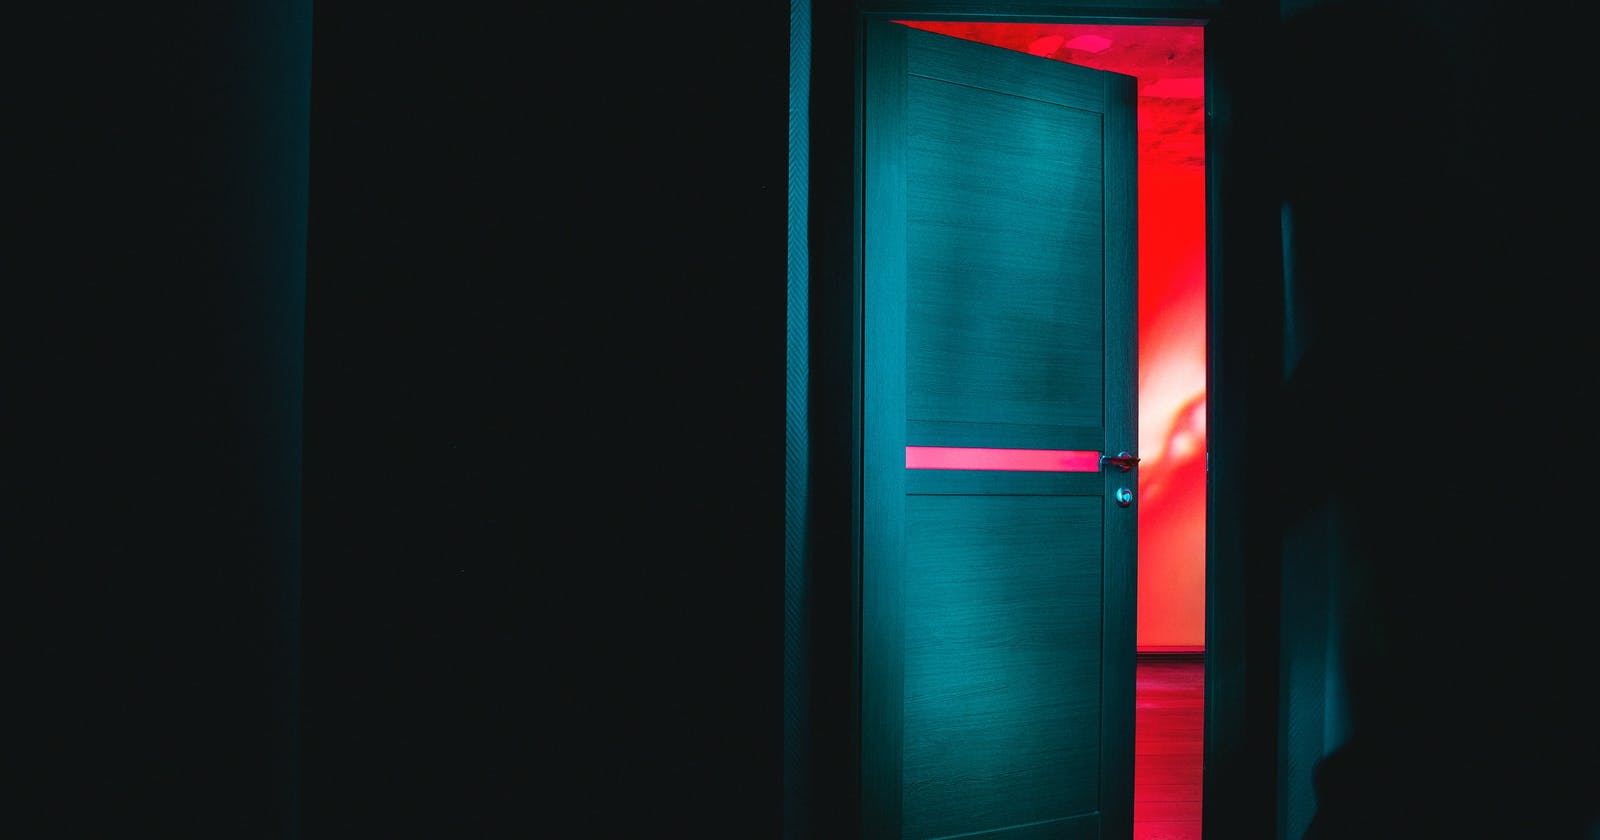 What is Cybersecurity? (An anecdote about a doorknob)